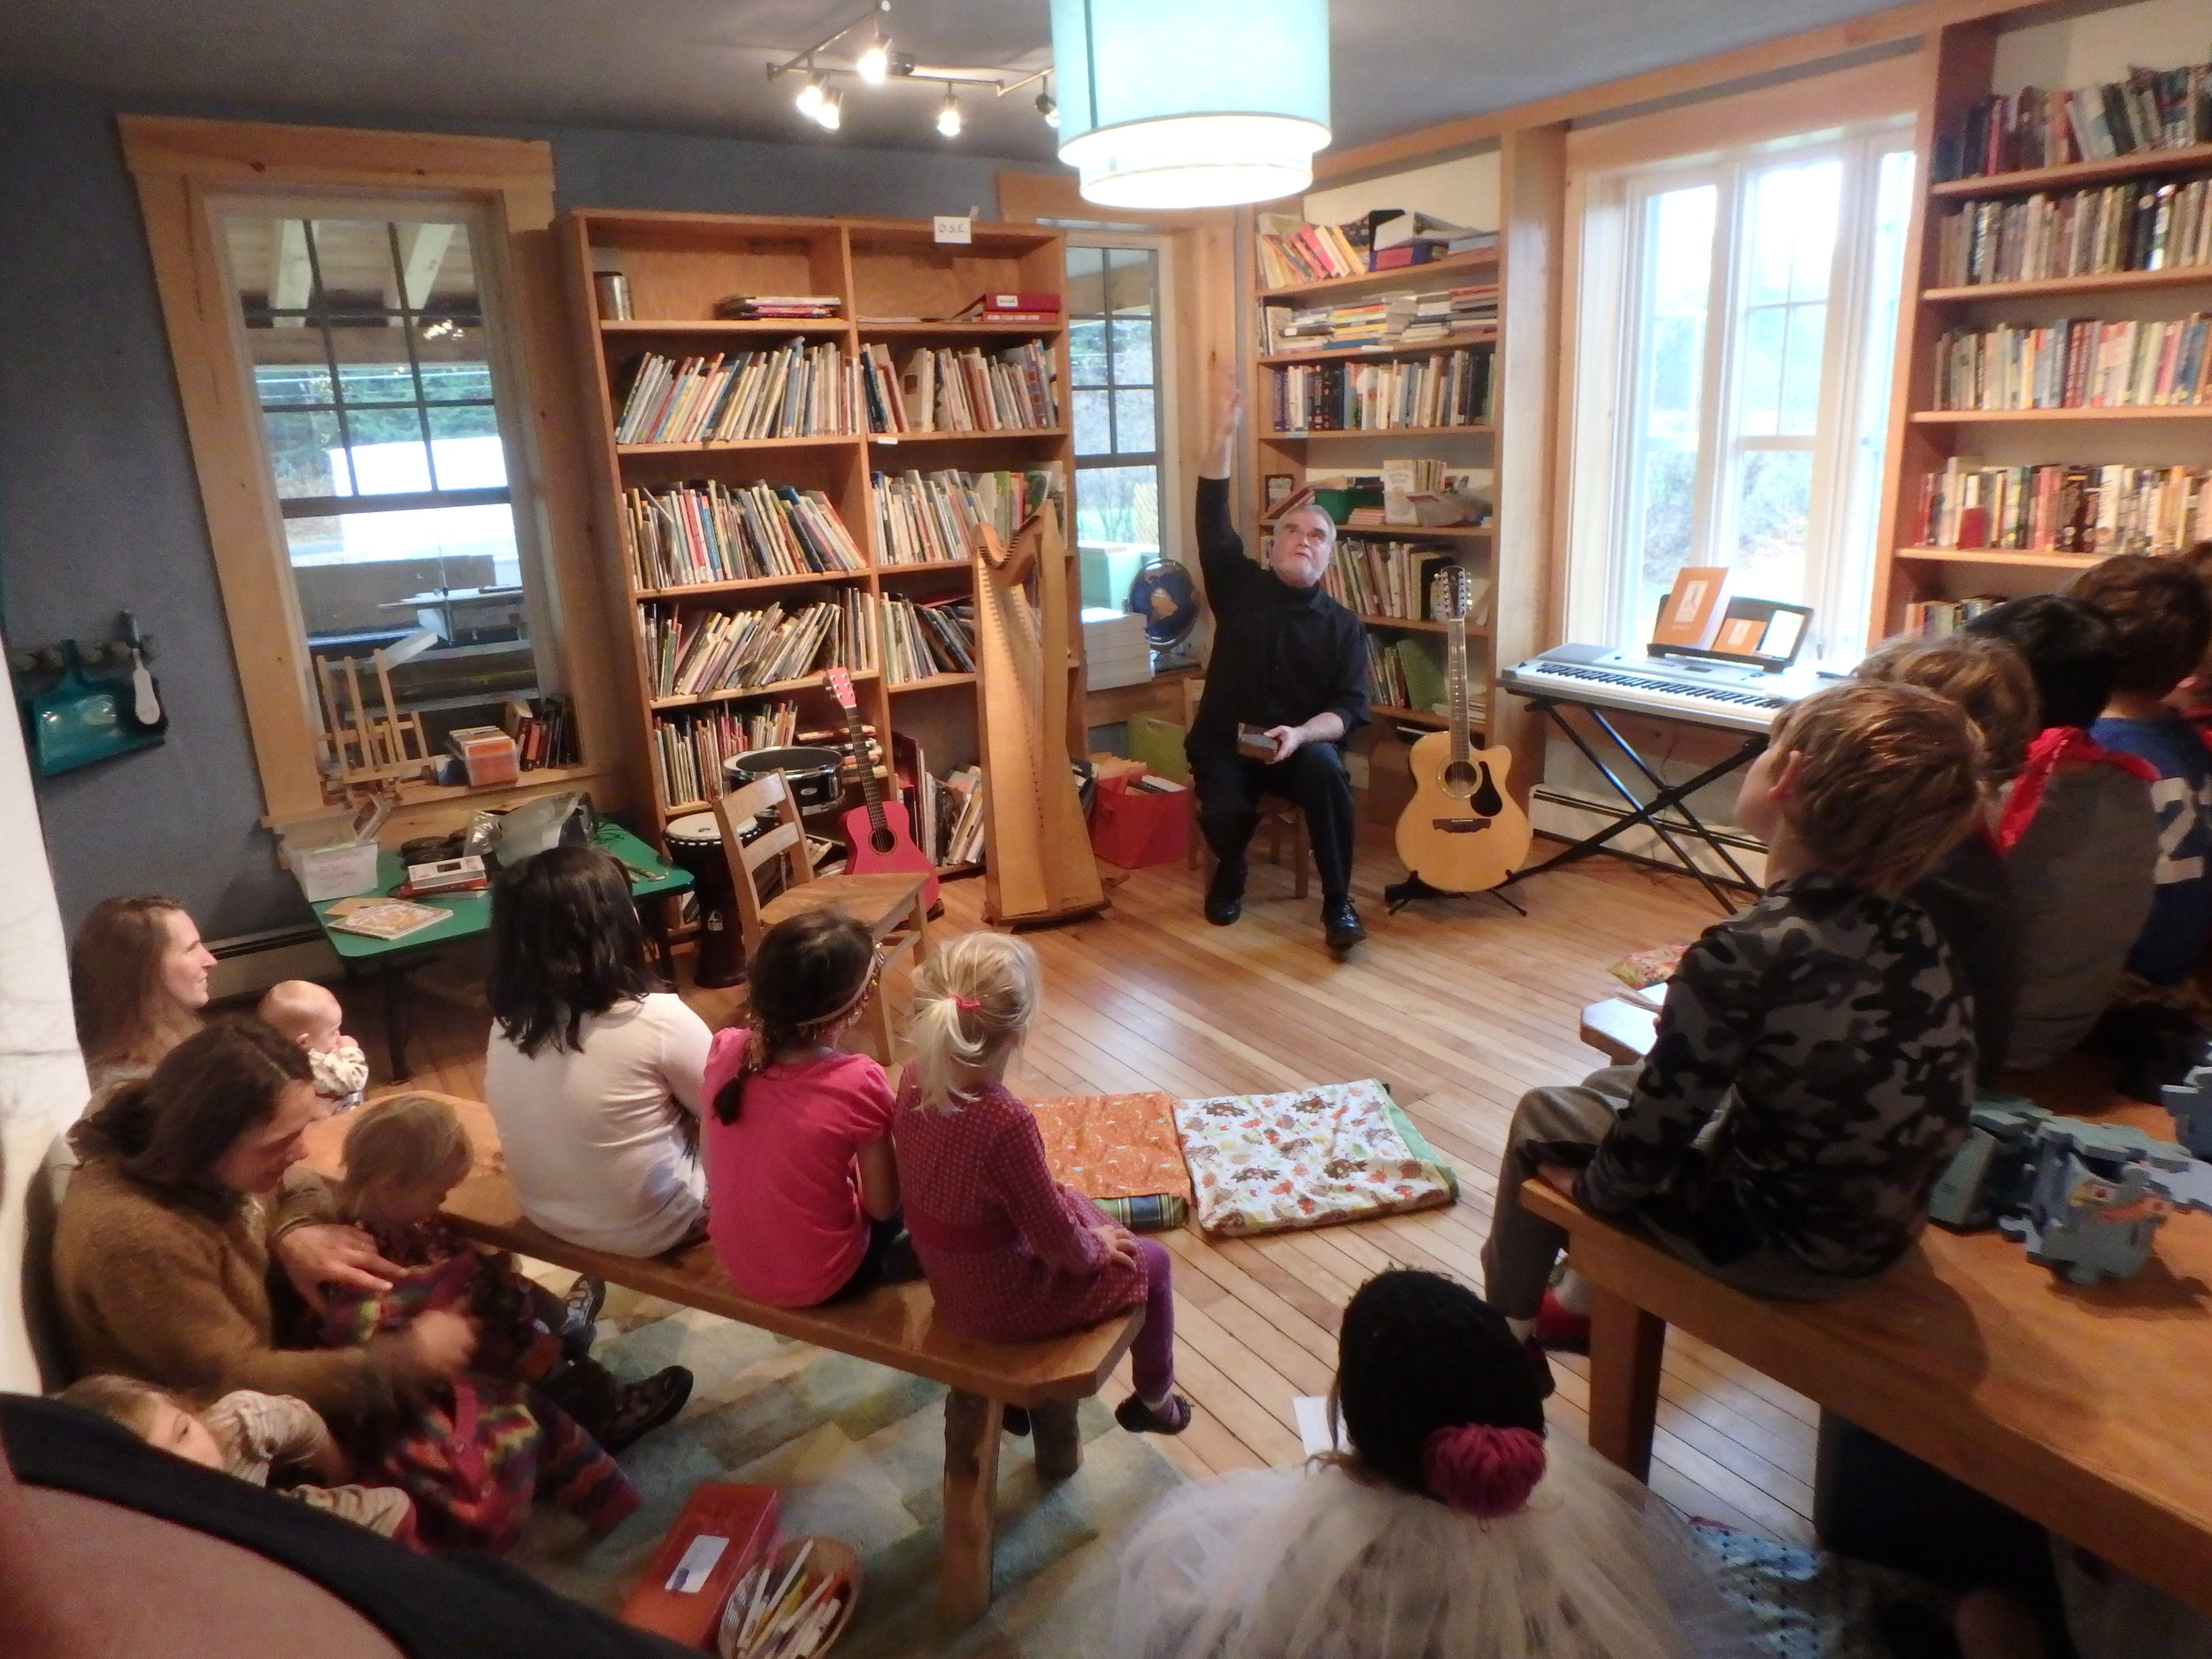 ...we have a special visitor? - Students and families alike were rapt with attention when storyteller and musician Odds Bodkin came to Woodland! With his celtic harp, and 12-string guitar, he enchanted young and old alike with his stories of empathy and kindness. Needless to say, one hour was not nearly long enough!